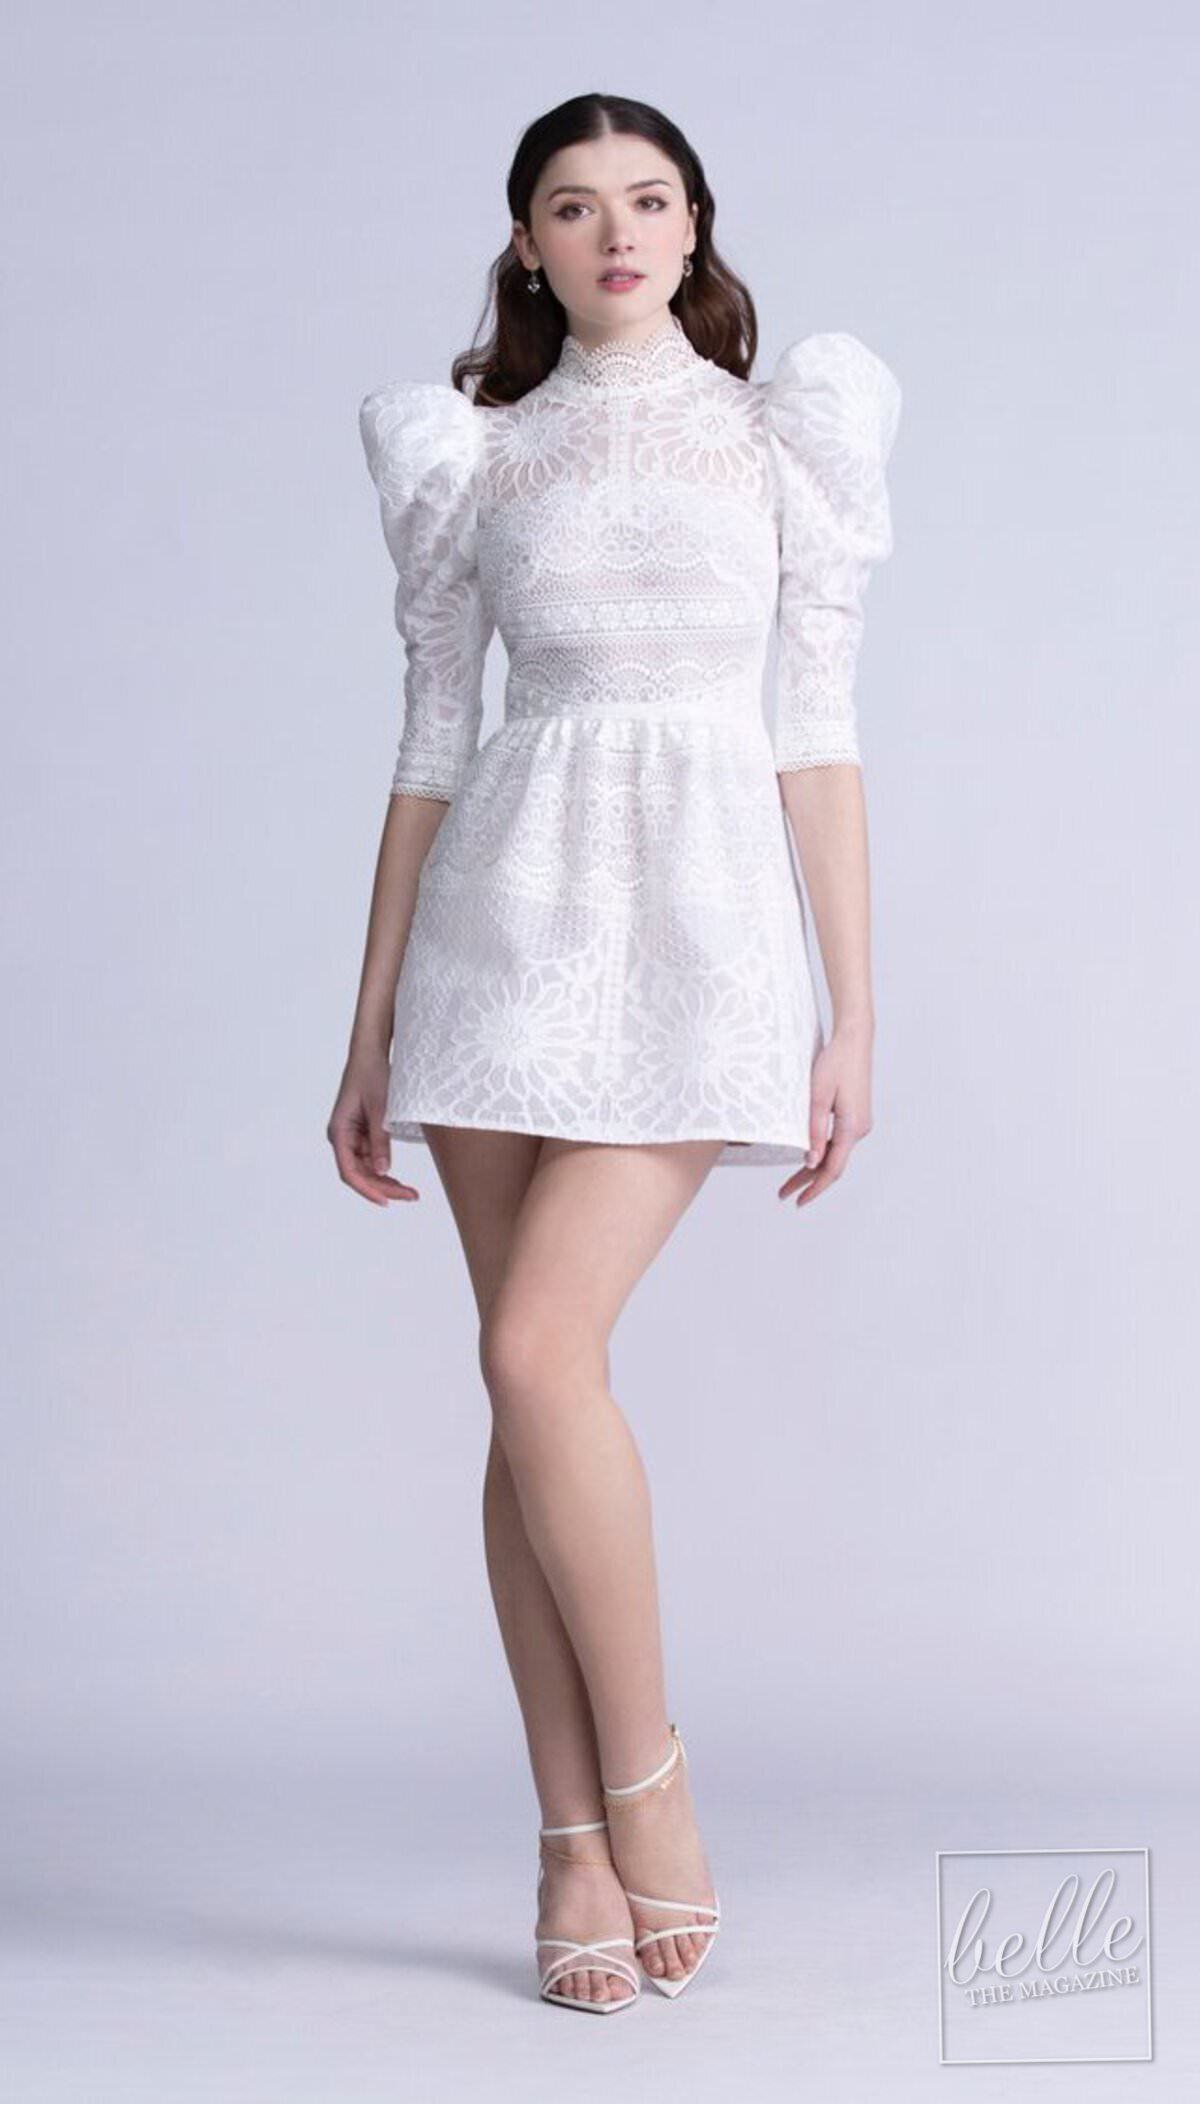 Wedding dress trends 2021 - Mini dresses and separates - Bywatters - Adelia